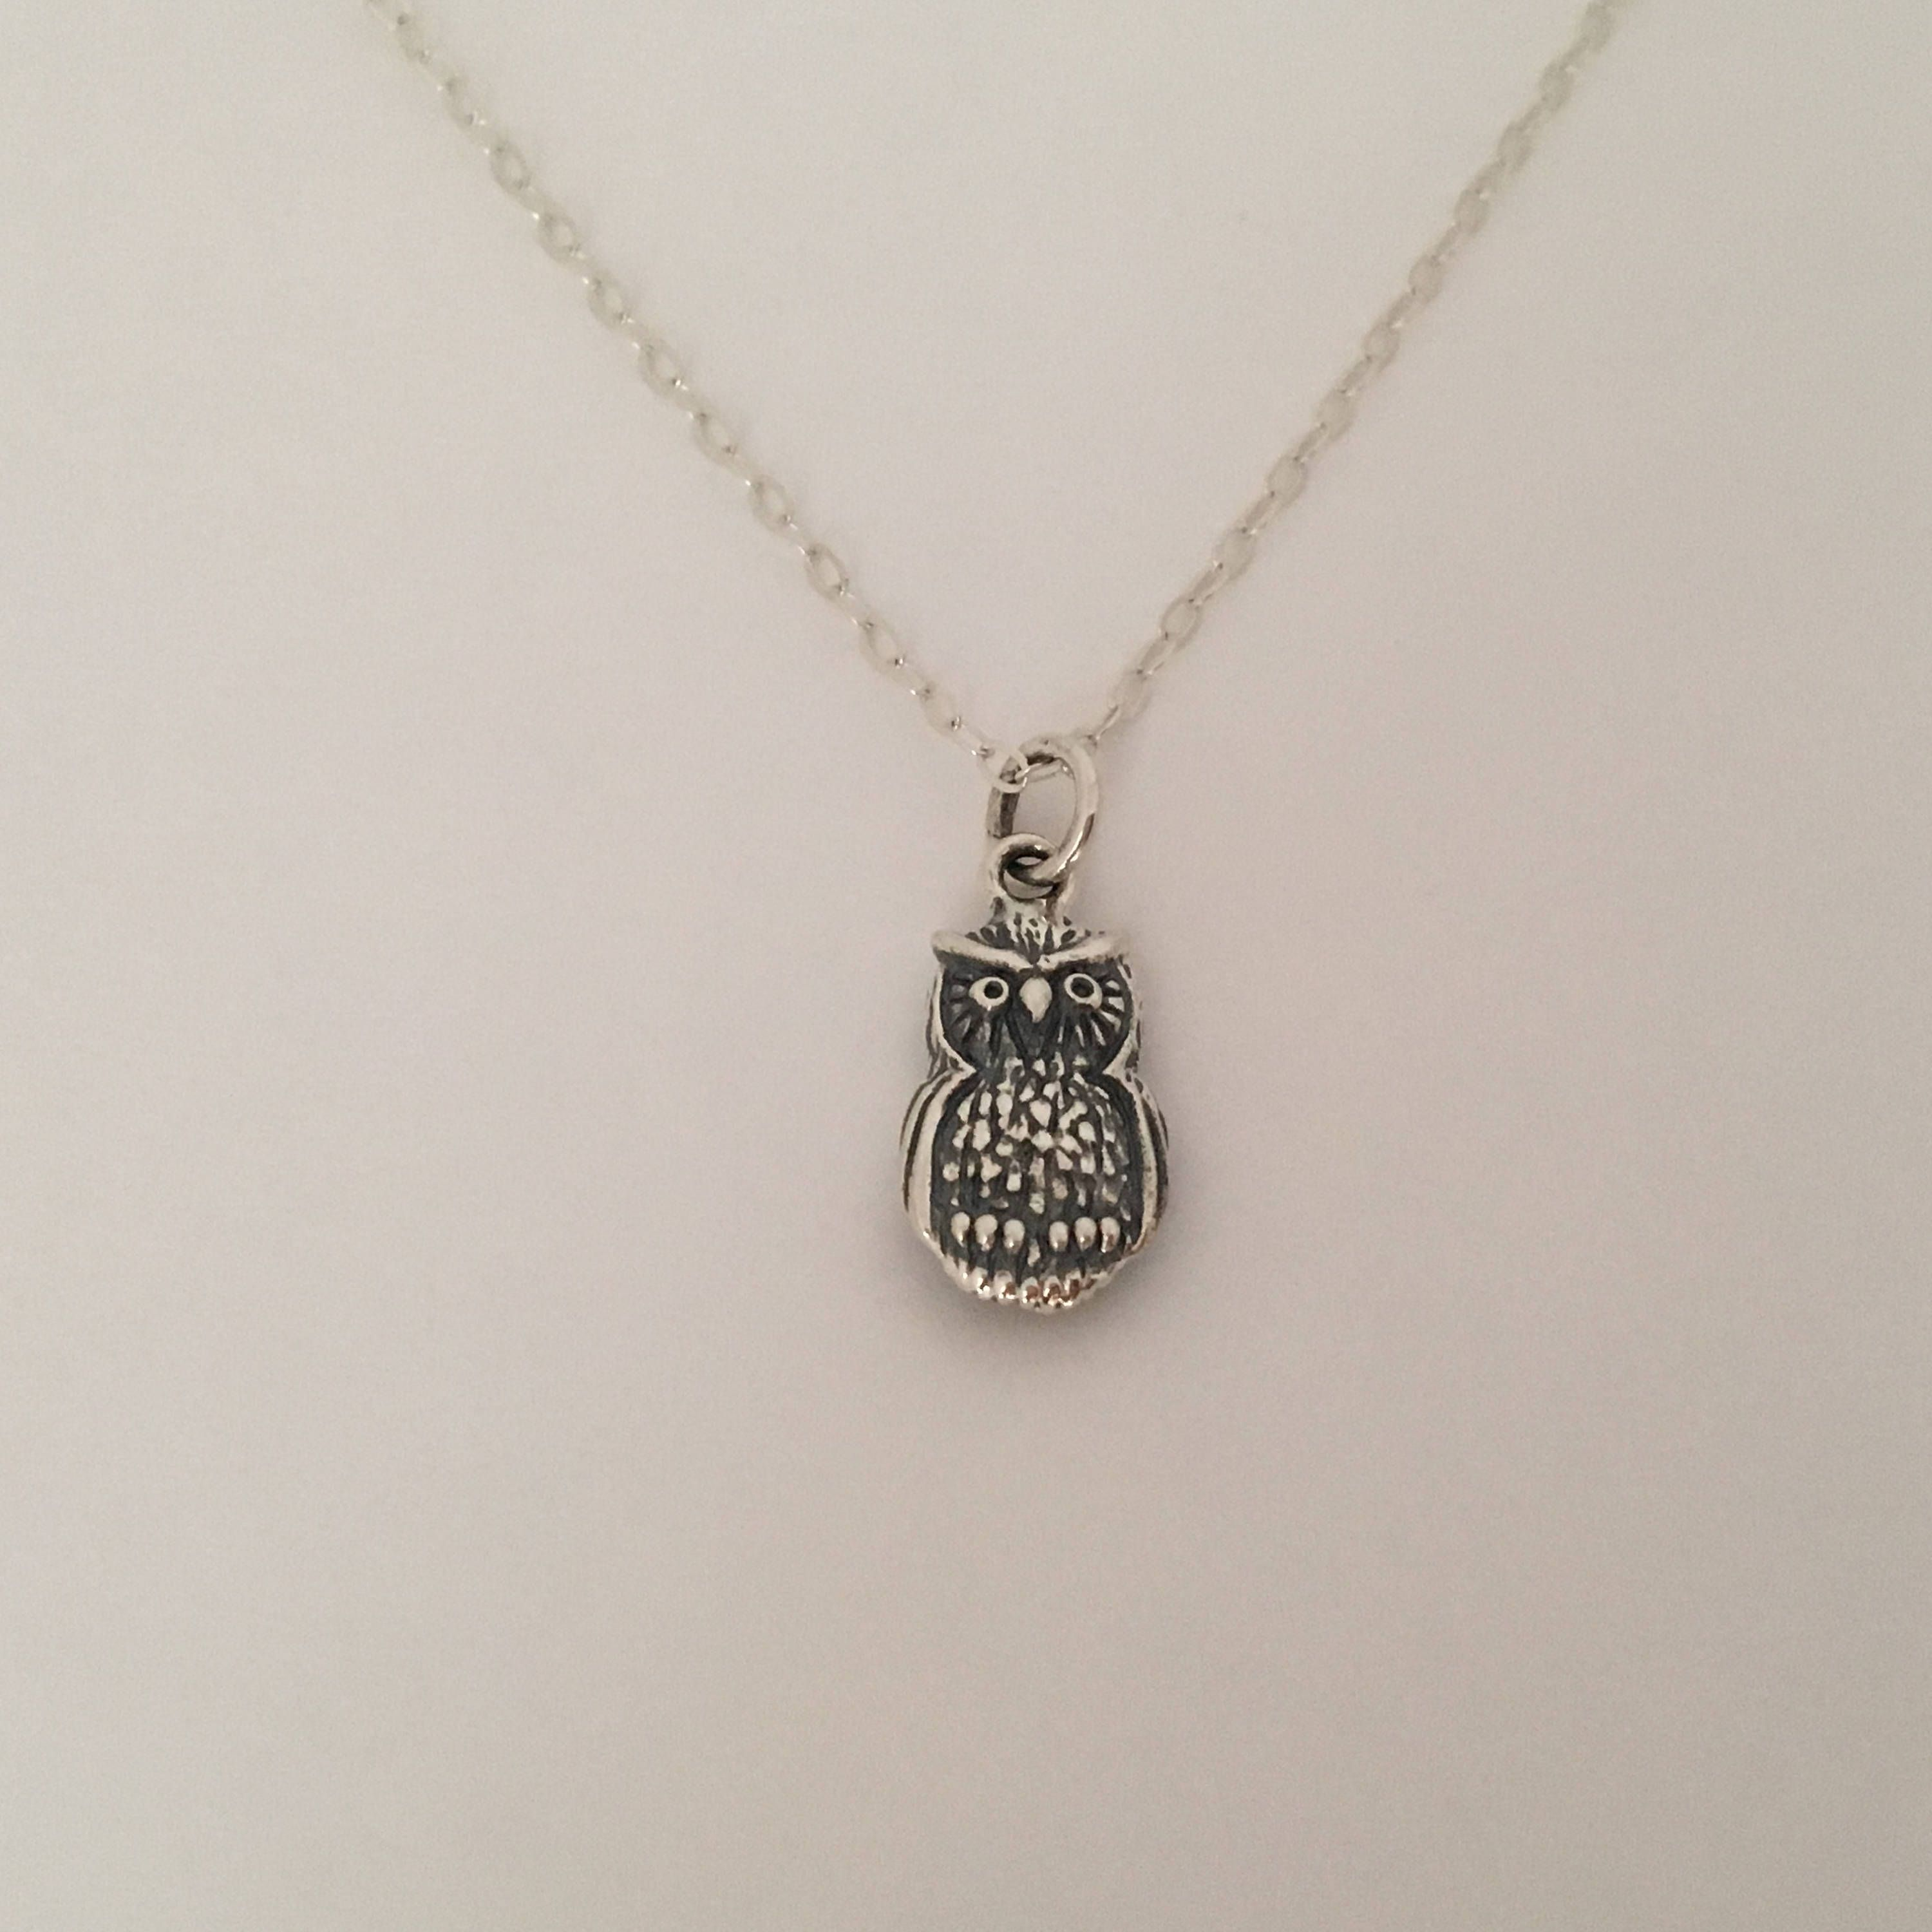 Sterling silver Owl necklace, owl charm necklace, wise owl pendant, silver owl, owl jewelry by ArujaDesigns on Etsy